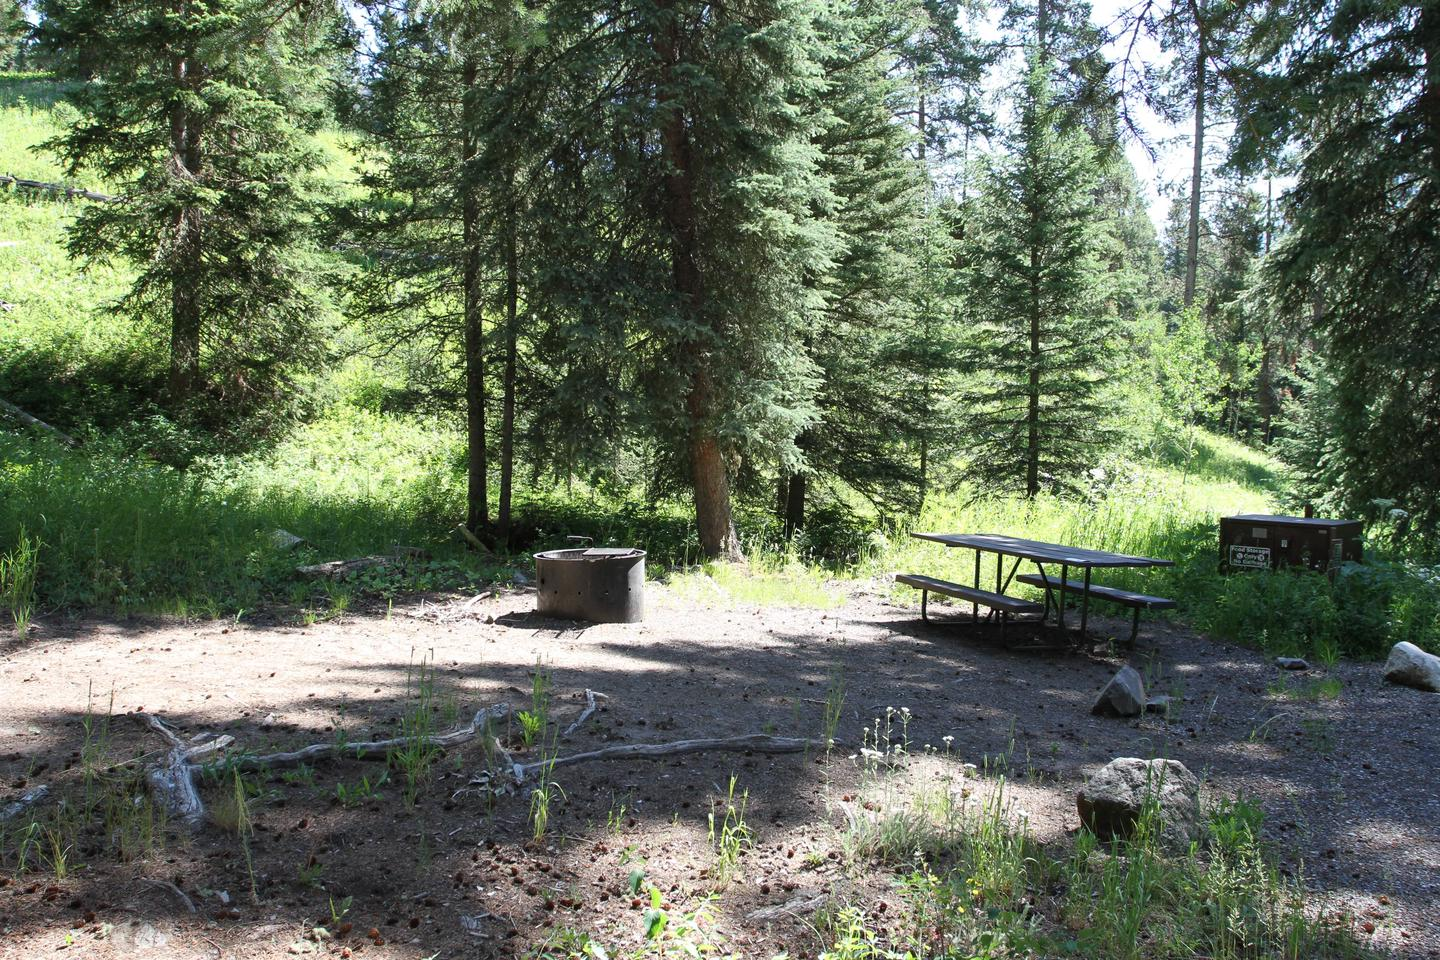 Pebble Creek Campground Site #9Pebble Creek Campground's only accessible Site #9